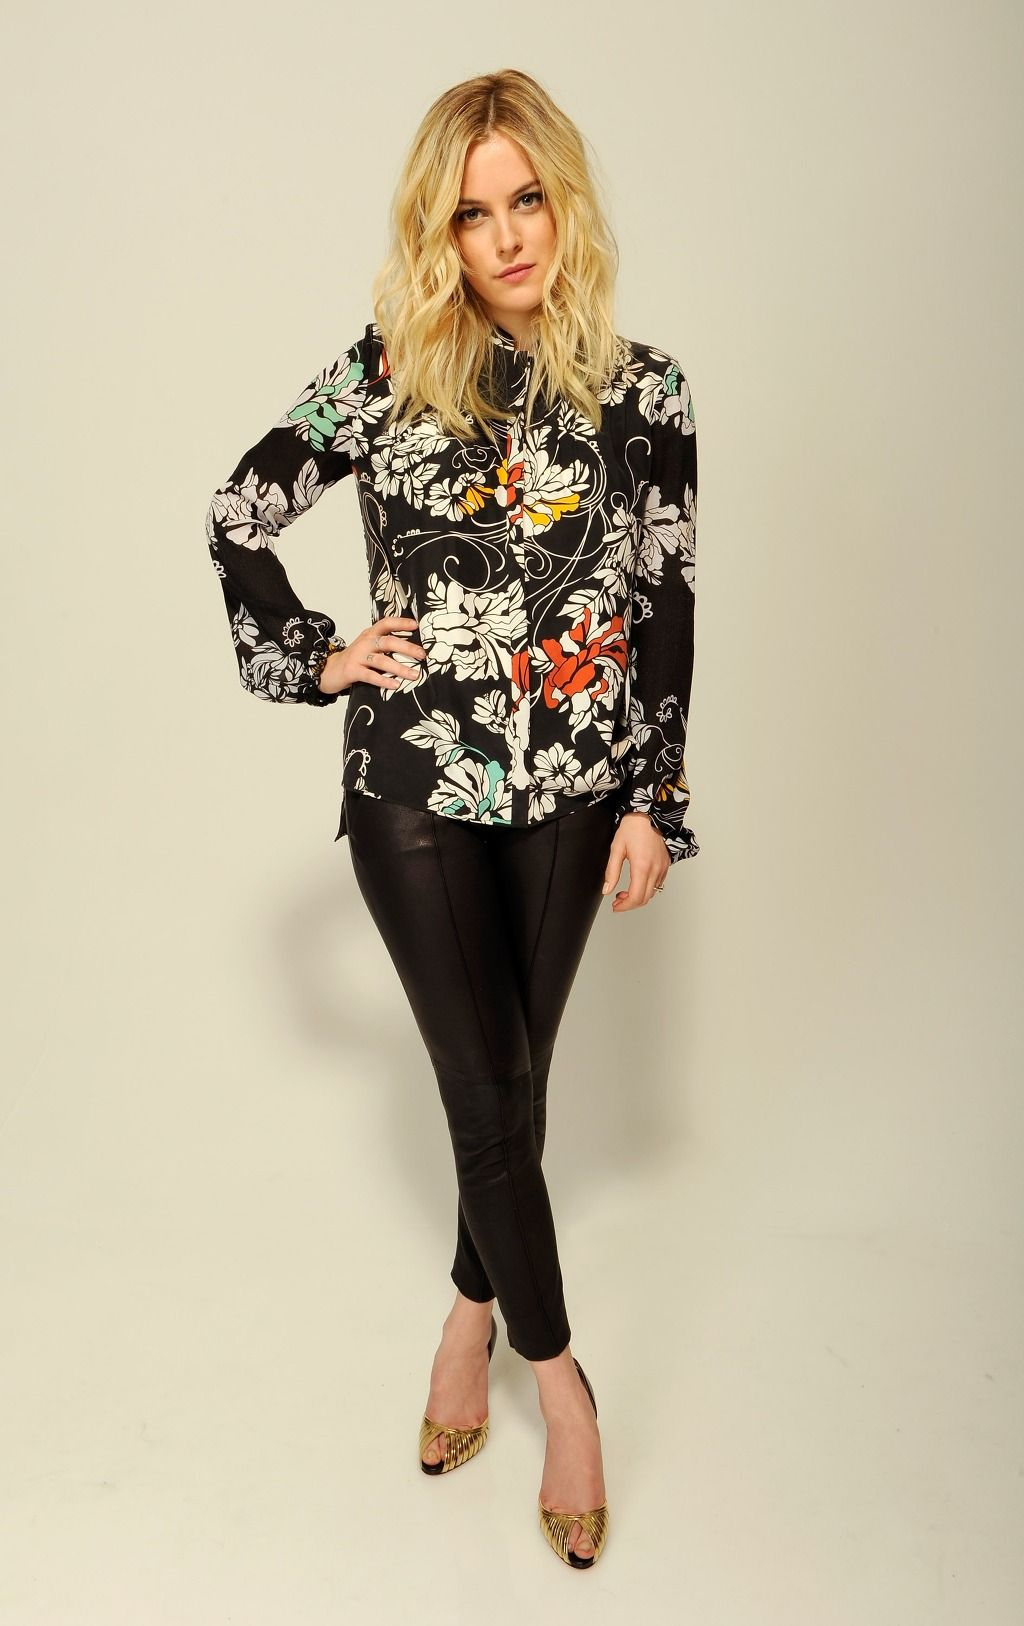 Actress Riley Keough of the film ' Jack and Diane' visits the Tribeca Film Festival 2012 portrait studio at the Cadillac Tribeca Press Lounge on April 21, 2012 in New York City. Description from zimbio.com. I searched for this on bing.com/images